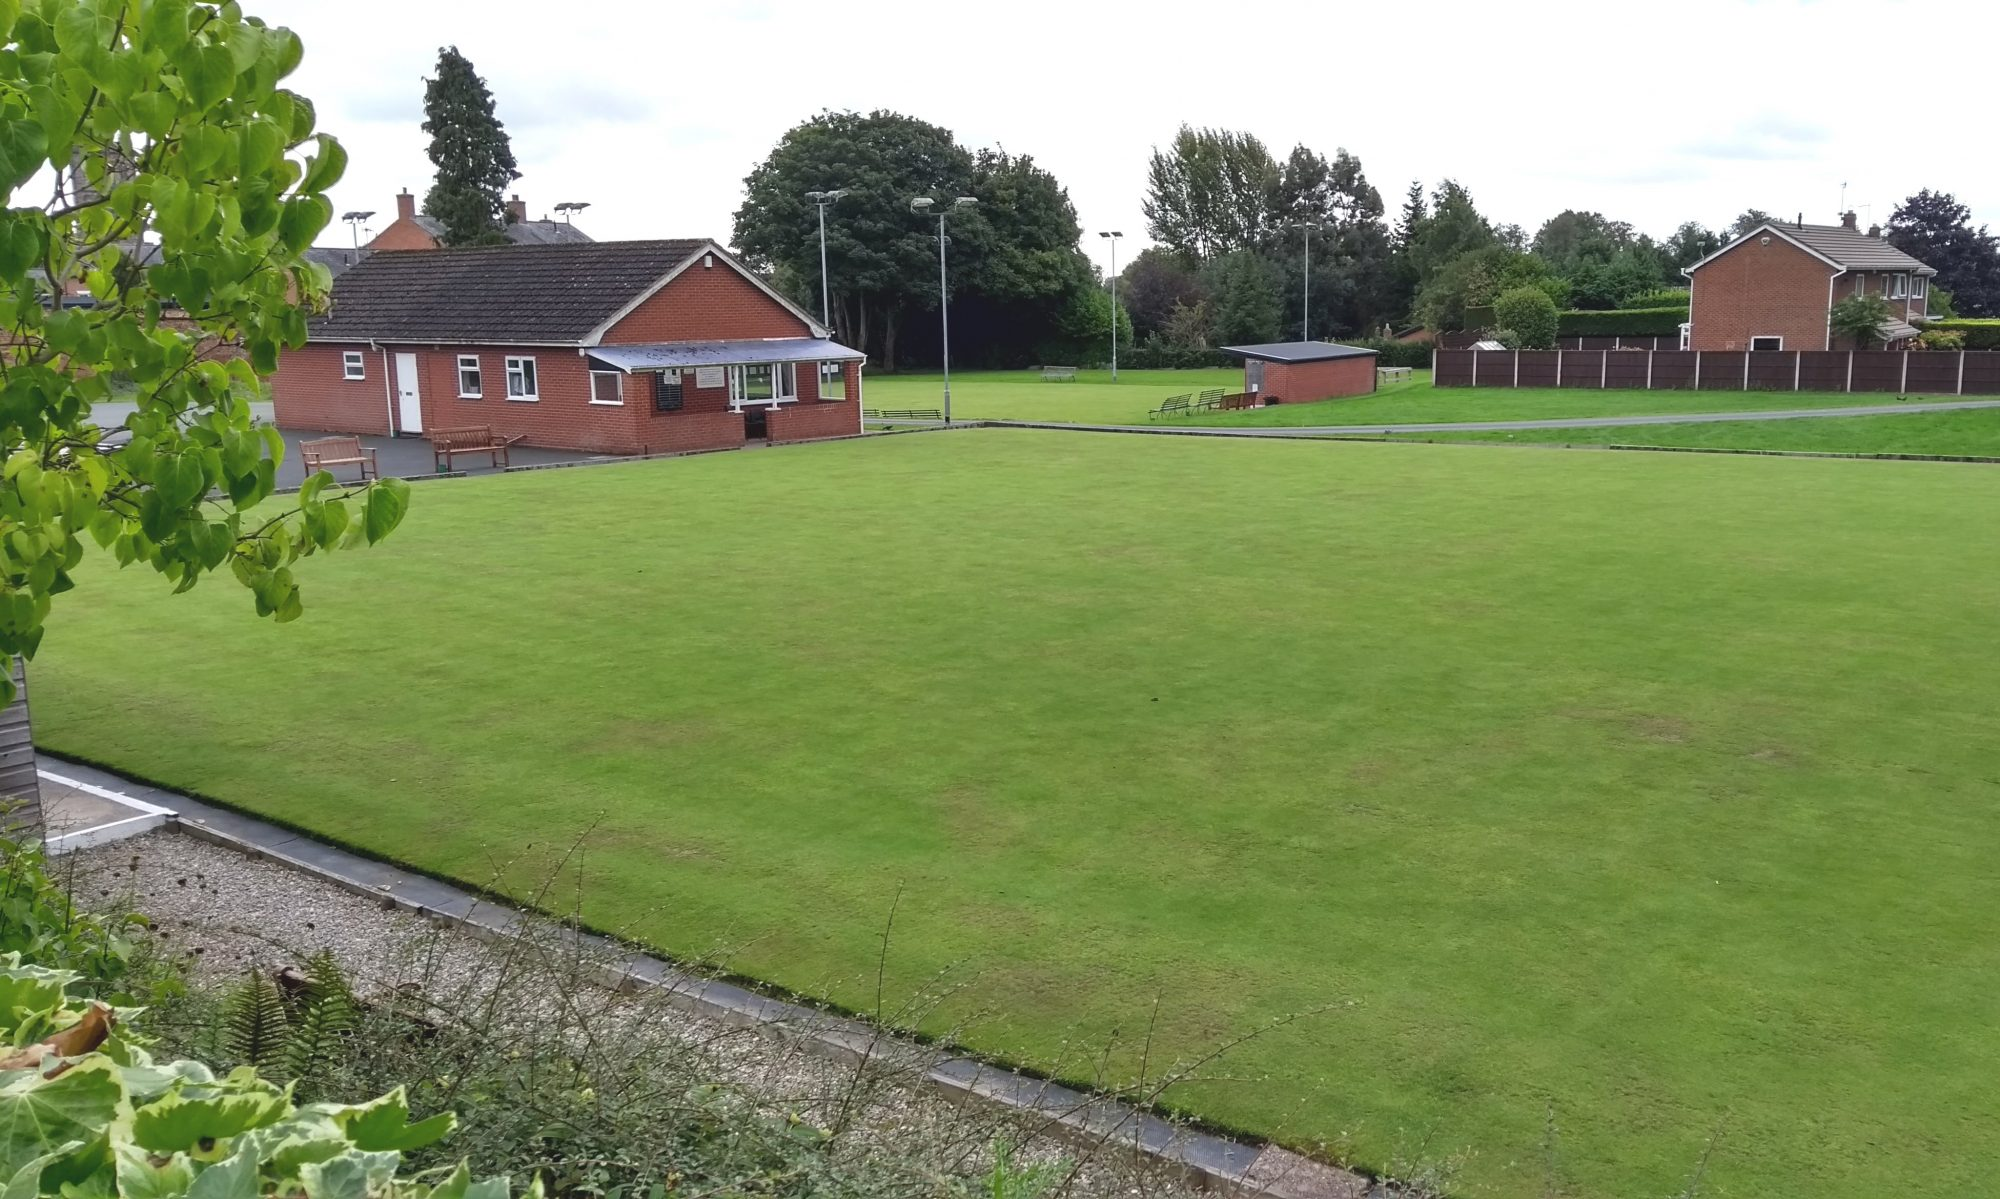 Chester Road Bowling Club